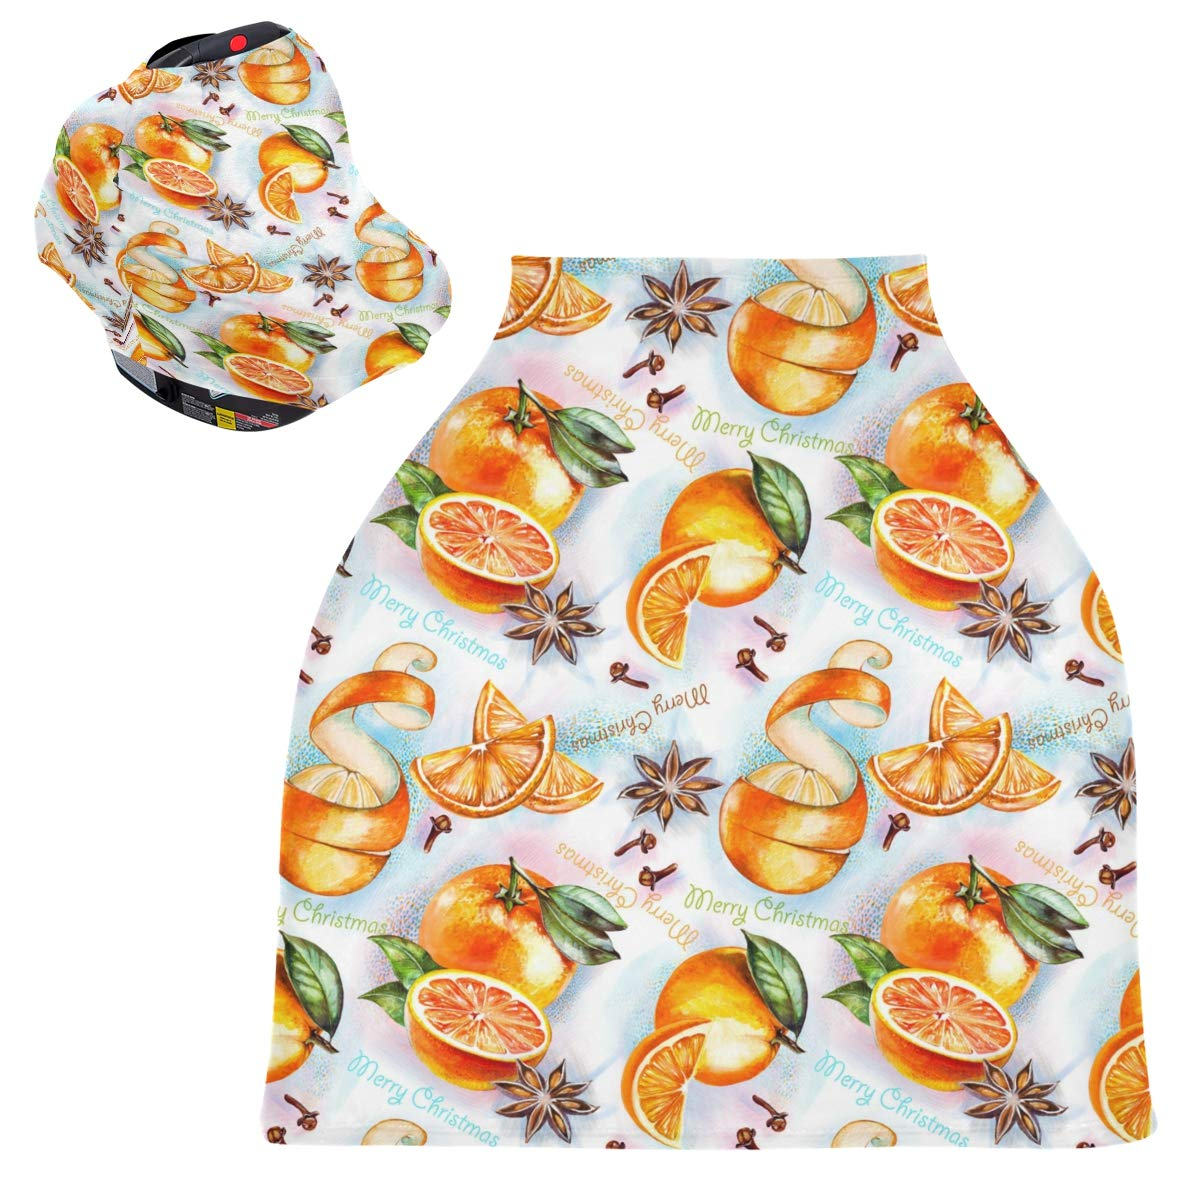 Stretchy Baby Car Seat Canopy - Christmas New Year Oranges Infant Stroller Cover Multi Use Baby Car Seat Covers Nursing Cover for Boy